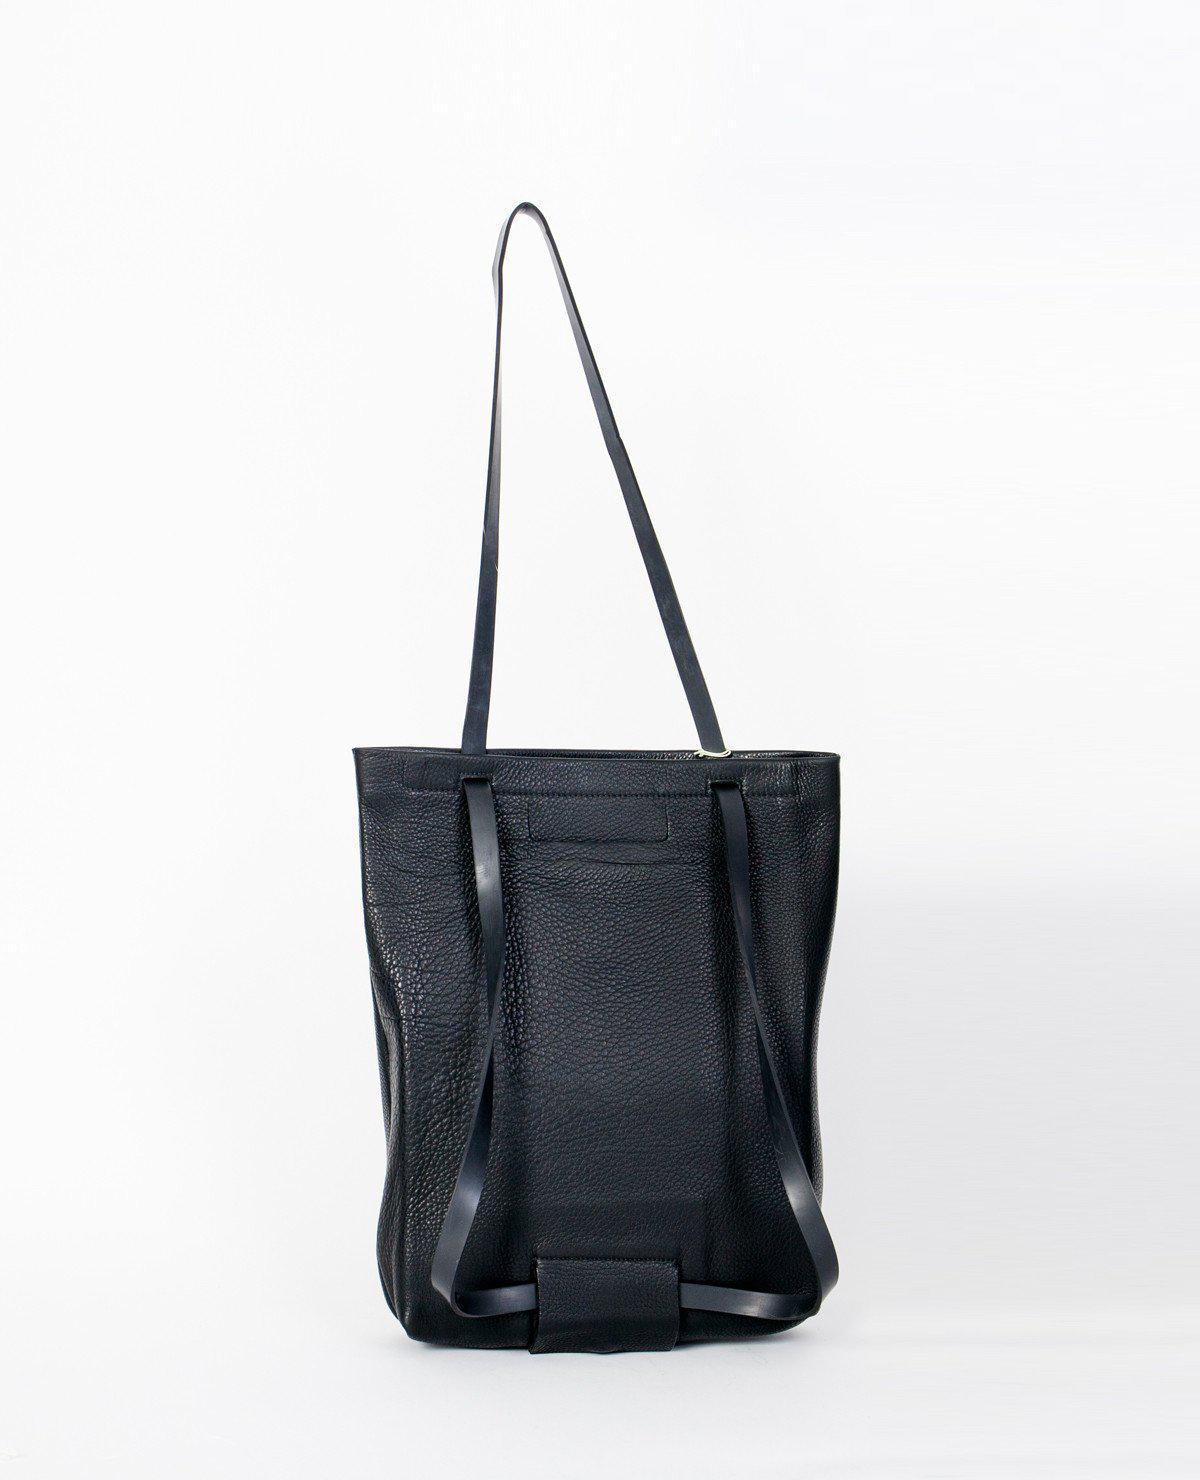 db13b67d989d Lyst - CHIYOME Large Tote Pack   Black in Black